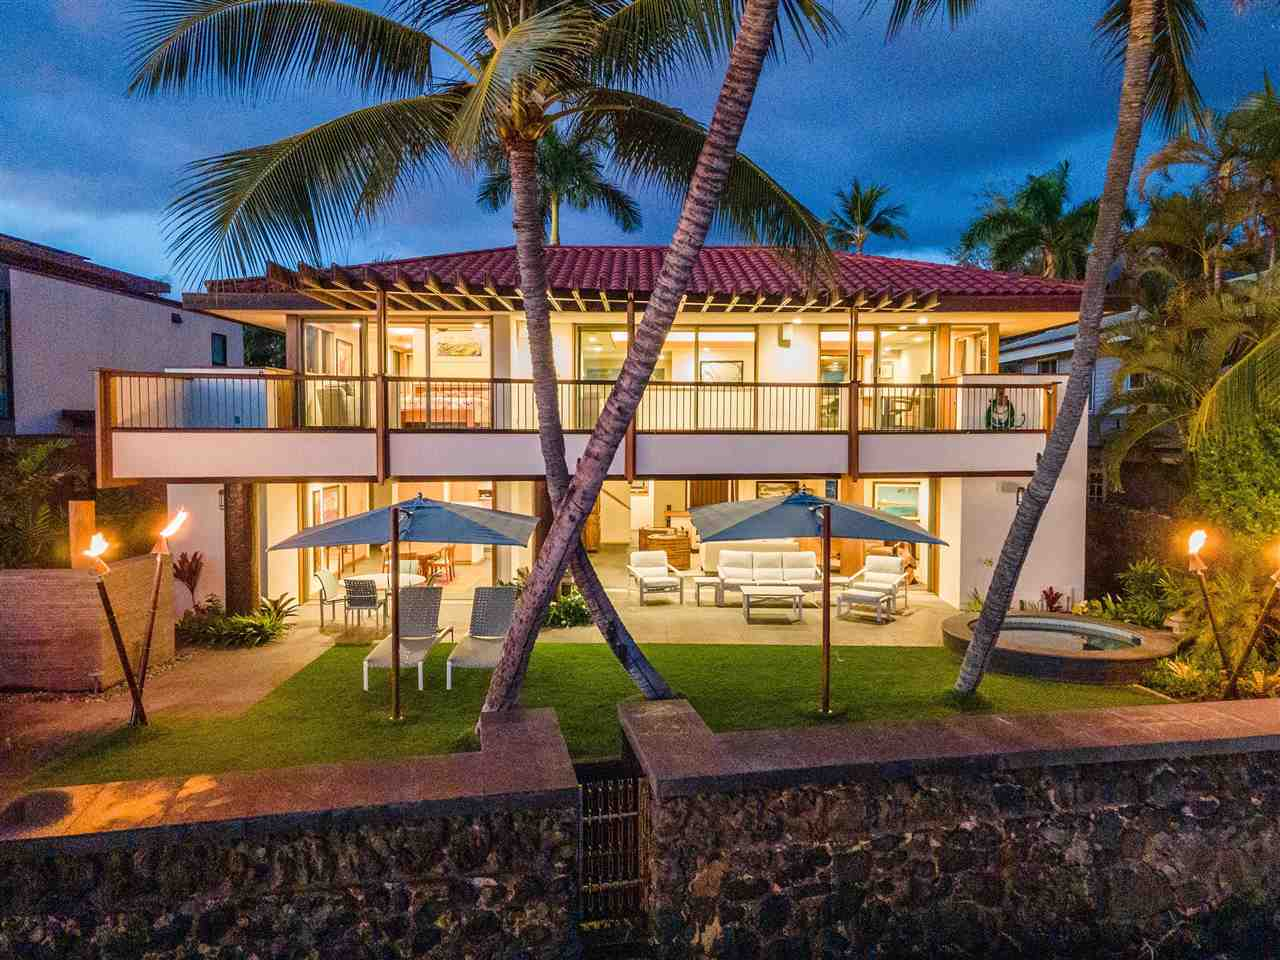 """1033 Front Street is for the most discriminating purchaser: Exquisitely well-appointed Modern-Hawaiian Oceanfront Estate with just-completed total renovation to modernize this iconic Front Street location. A short distance to popular """"baby beach"""" and to Historic Lahaina Town, which is the """"entertainment capital"""" of Maui with world-class restaurants and and shopping. This sophisticated oceanfront property enjoys the tranquillity of the ocean at your doorstep wile embracing all of the qualities of the ultimate Maui lifestyle. Enjoy the seamless combination of indoor/outdoor living in this Frank Lloyd Wright inspired design with large pocket doors and high ceilings. The Modern design features a plethora of different woods including koa, maple and cedar combined with basalt rock (lava) gives the home it's modern yet Hawaiian appeal. This private-gated property features 2 en-suite bedrooms, a media room, state-of-the-art chef's dream kitchen, surround sound, a large office with stunning views and spacious outdoor lanais. A truly remarkable home in a idyllic setting."""